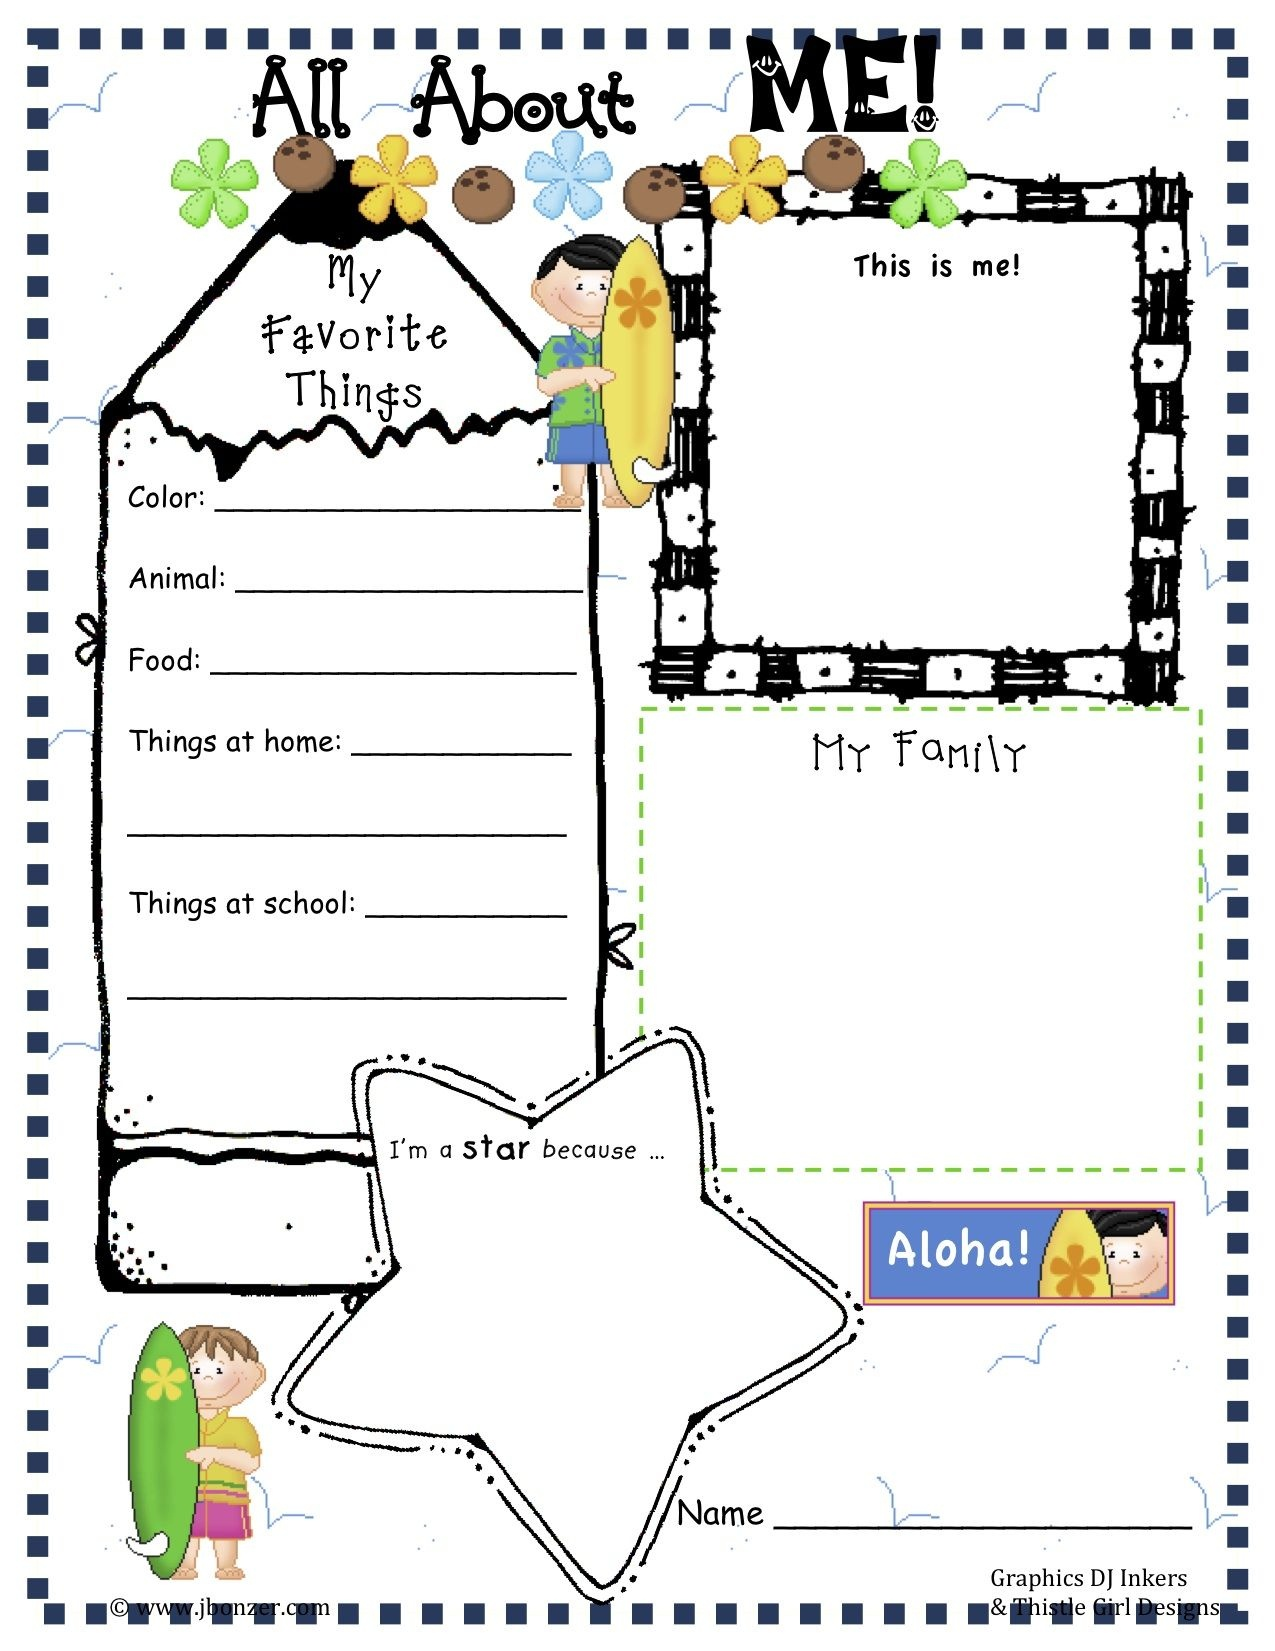 Pinangela Sanguino On Education | All About Me Worksheet, All - Free Printable All About Me Poster